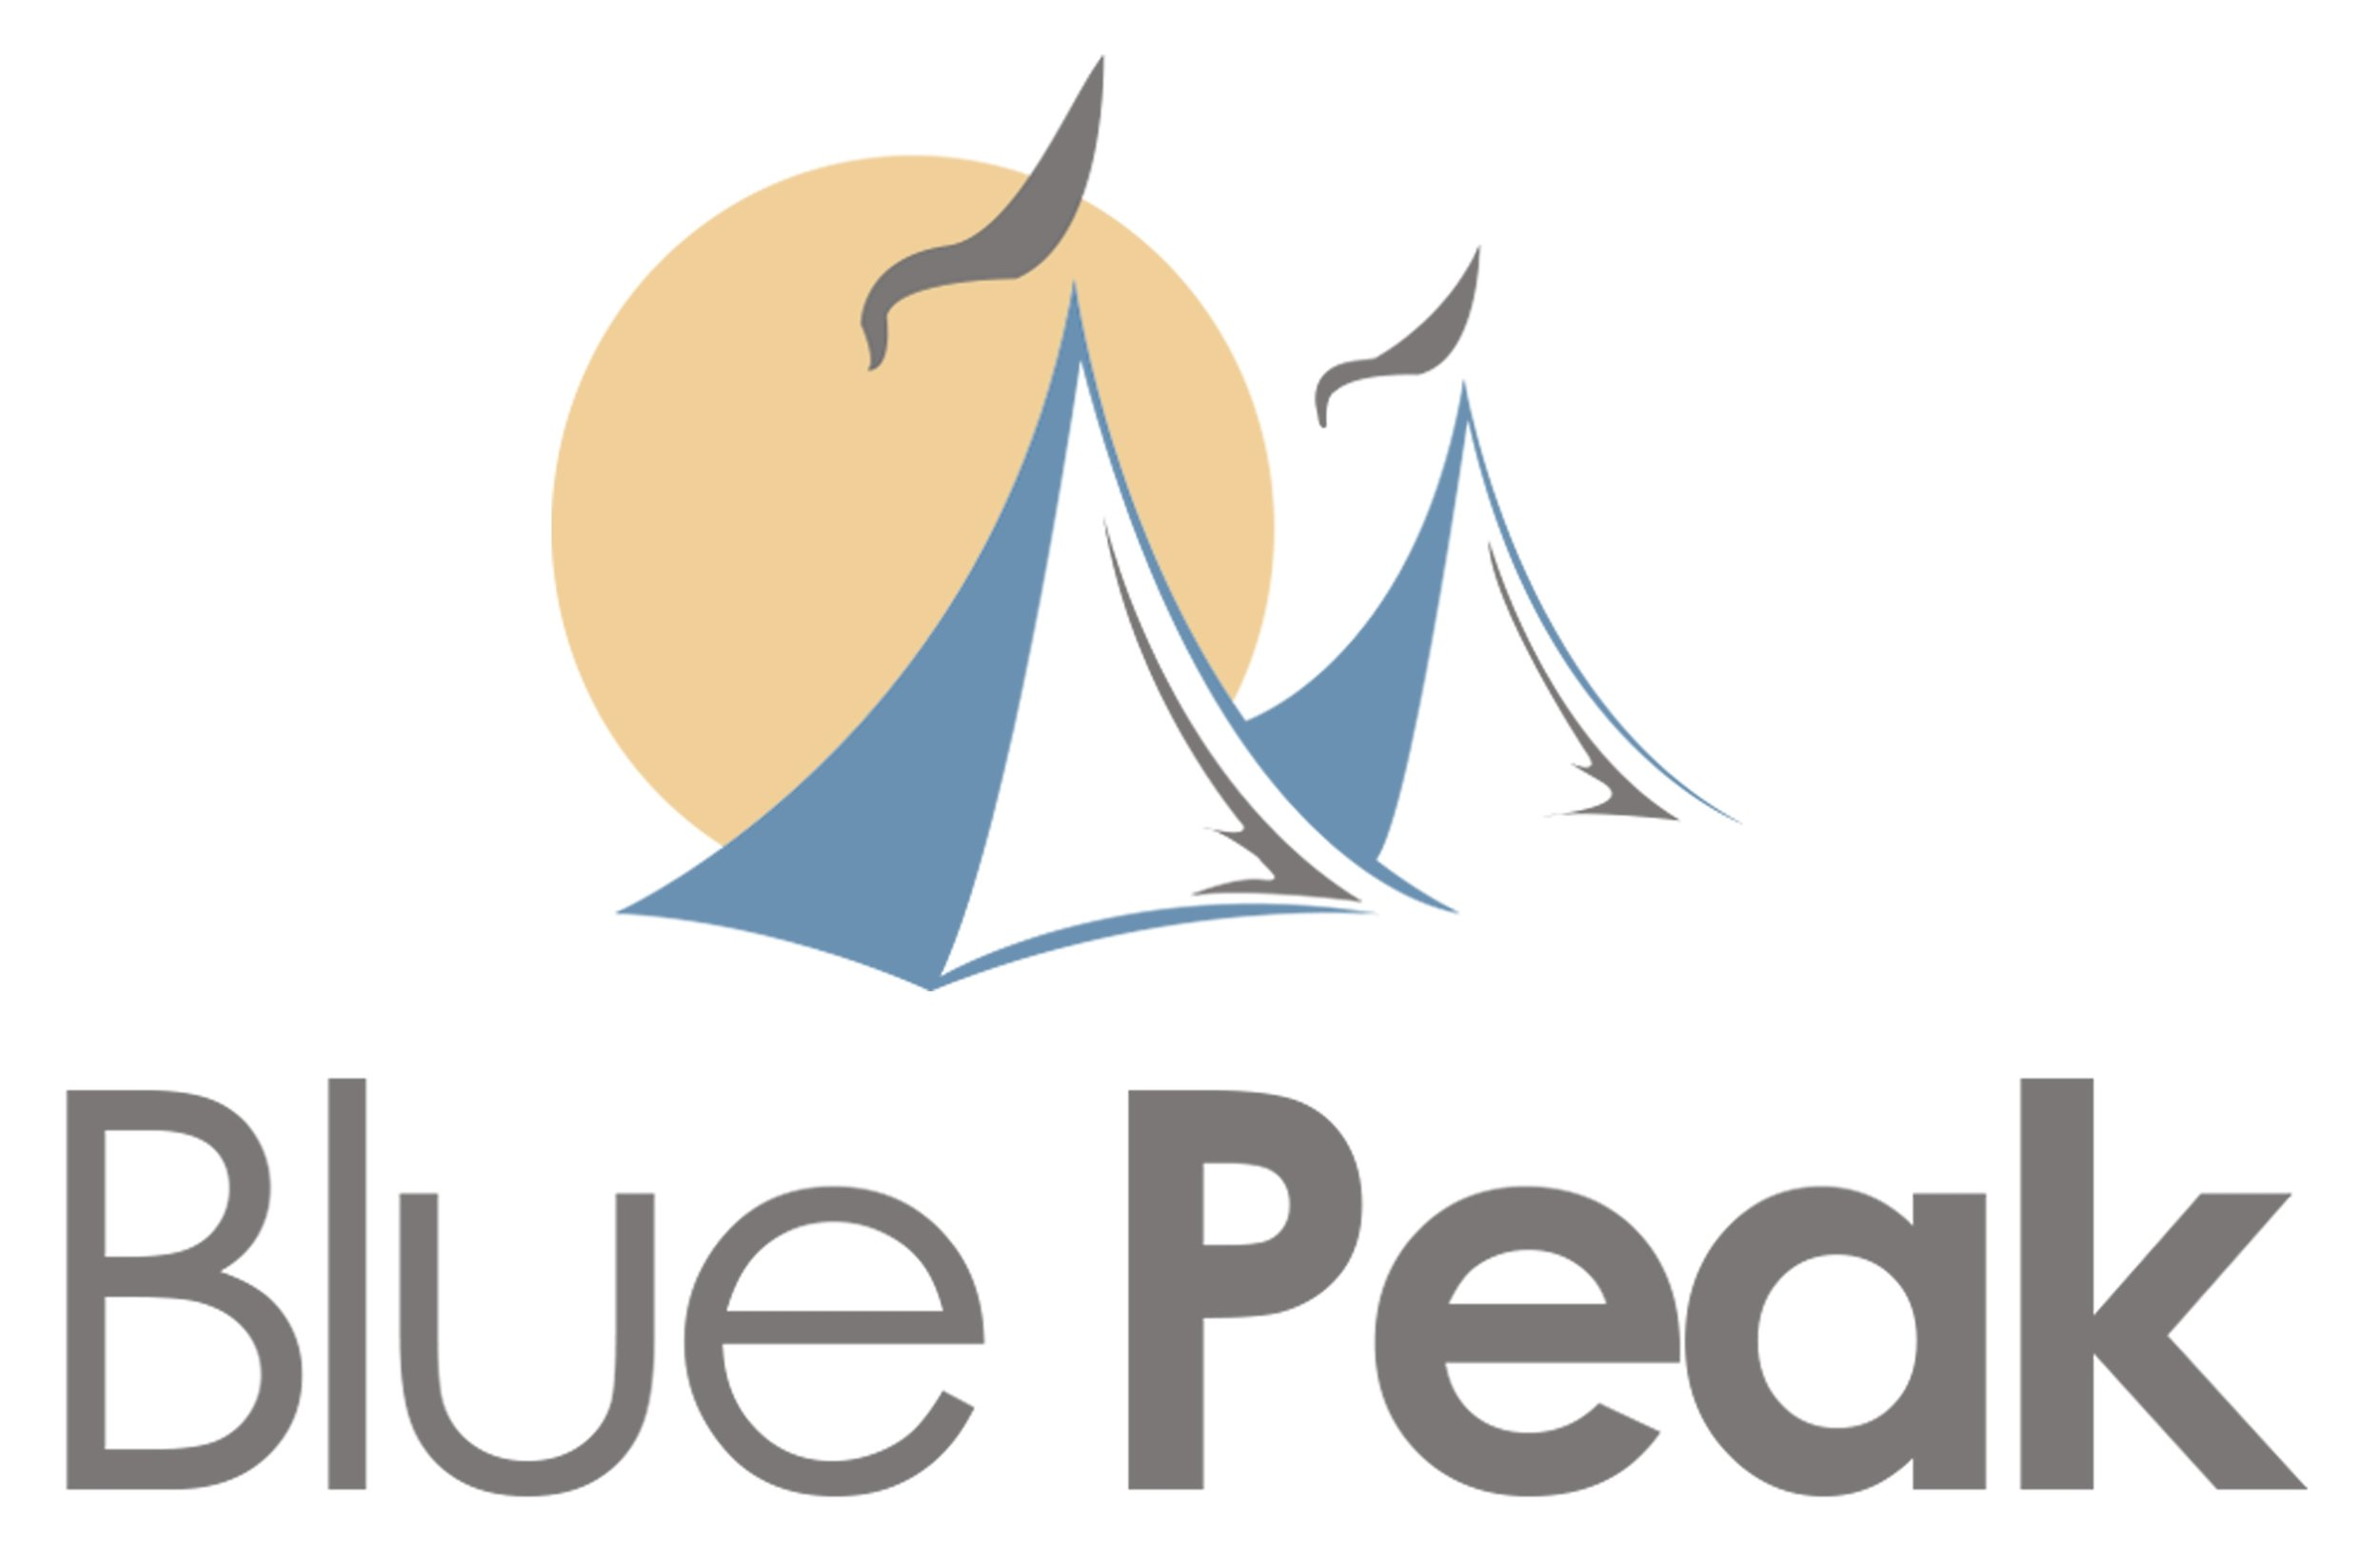 Blue Peak Tents Logo 2 (1).jpg